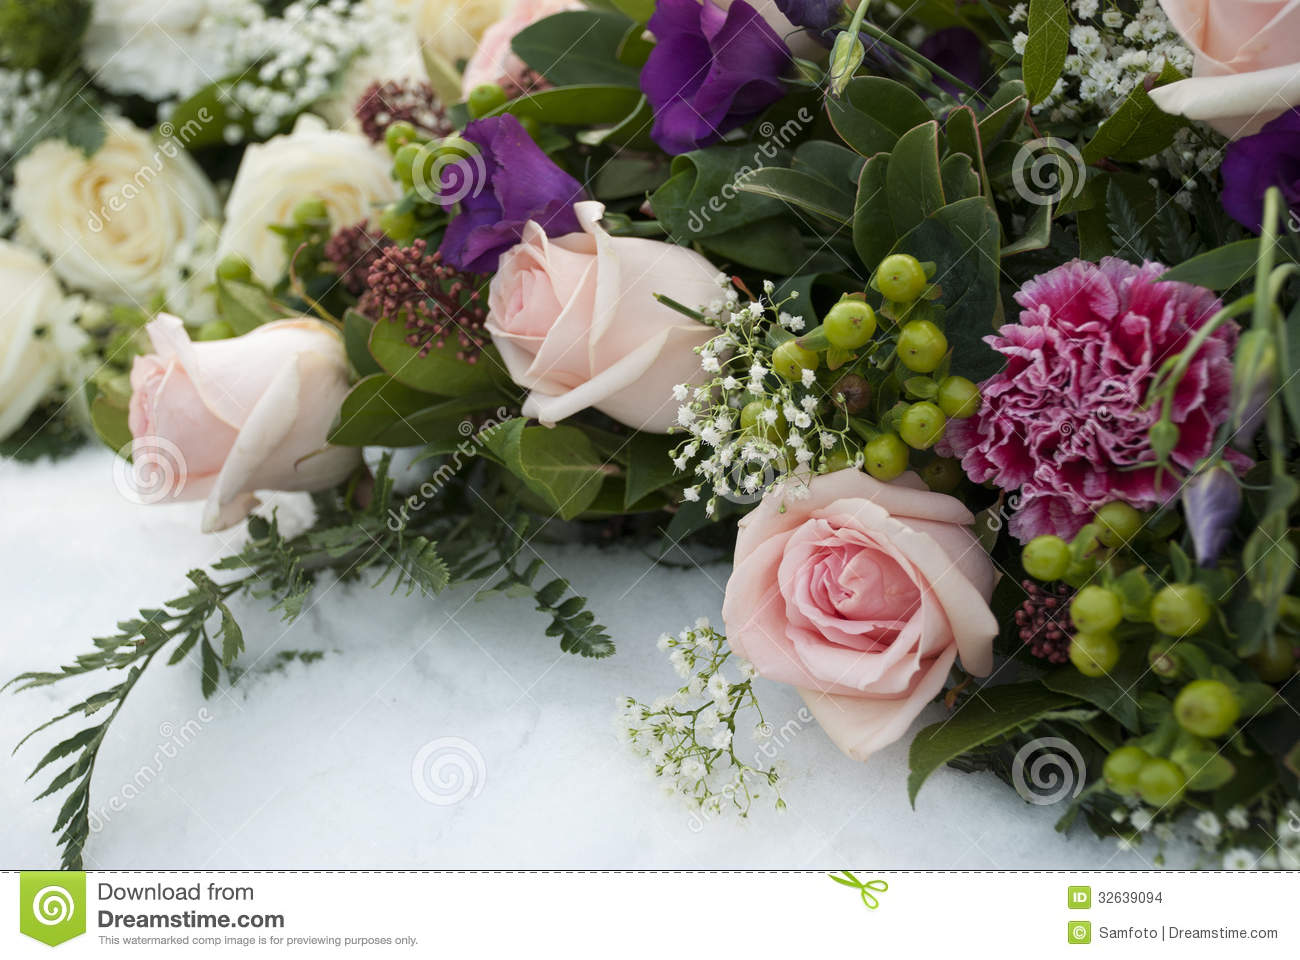 Funeral flowers in the snow on a cemetery stock photo image of download comp izmirmasajfo